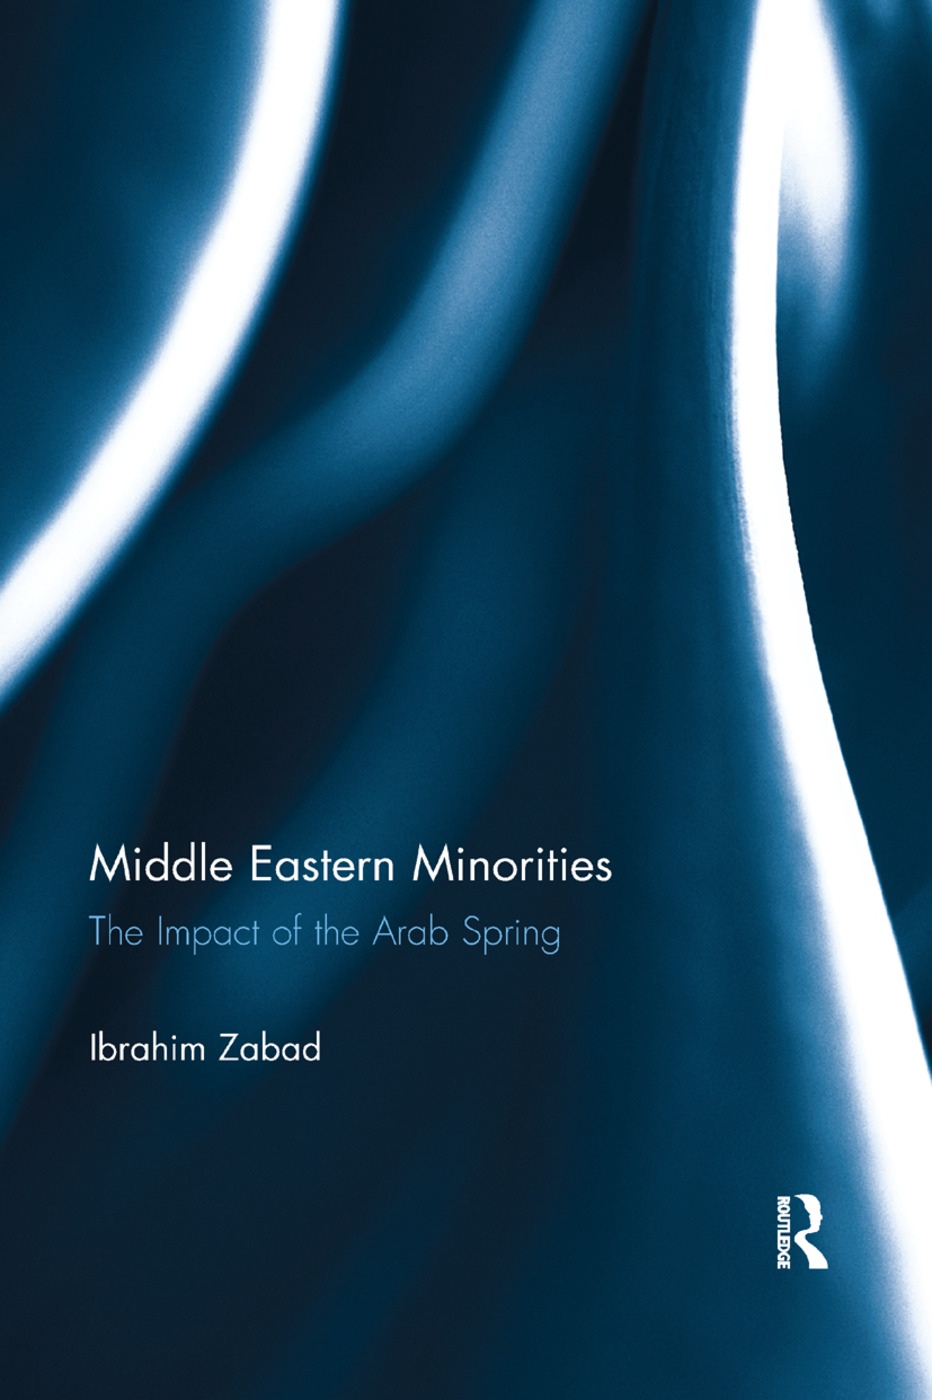 Middle Eastern Minorities: The Impact of the Arab Spring book cover